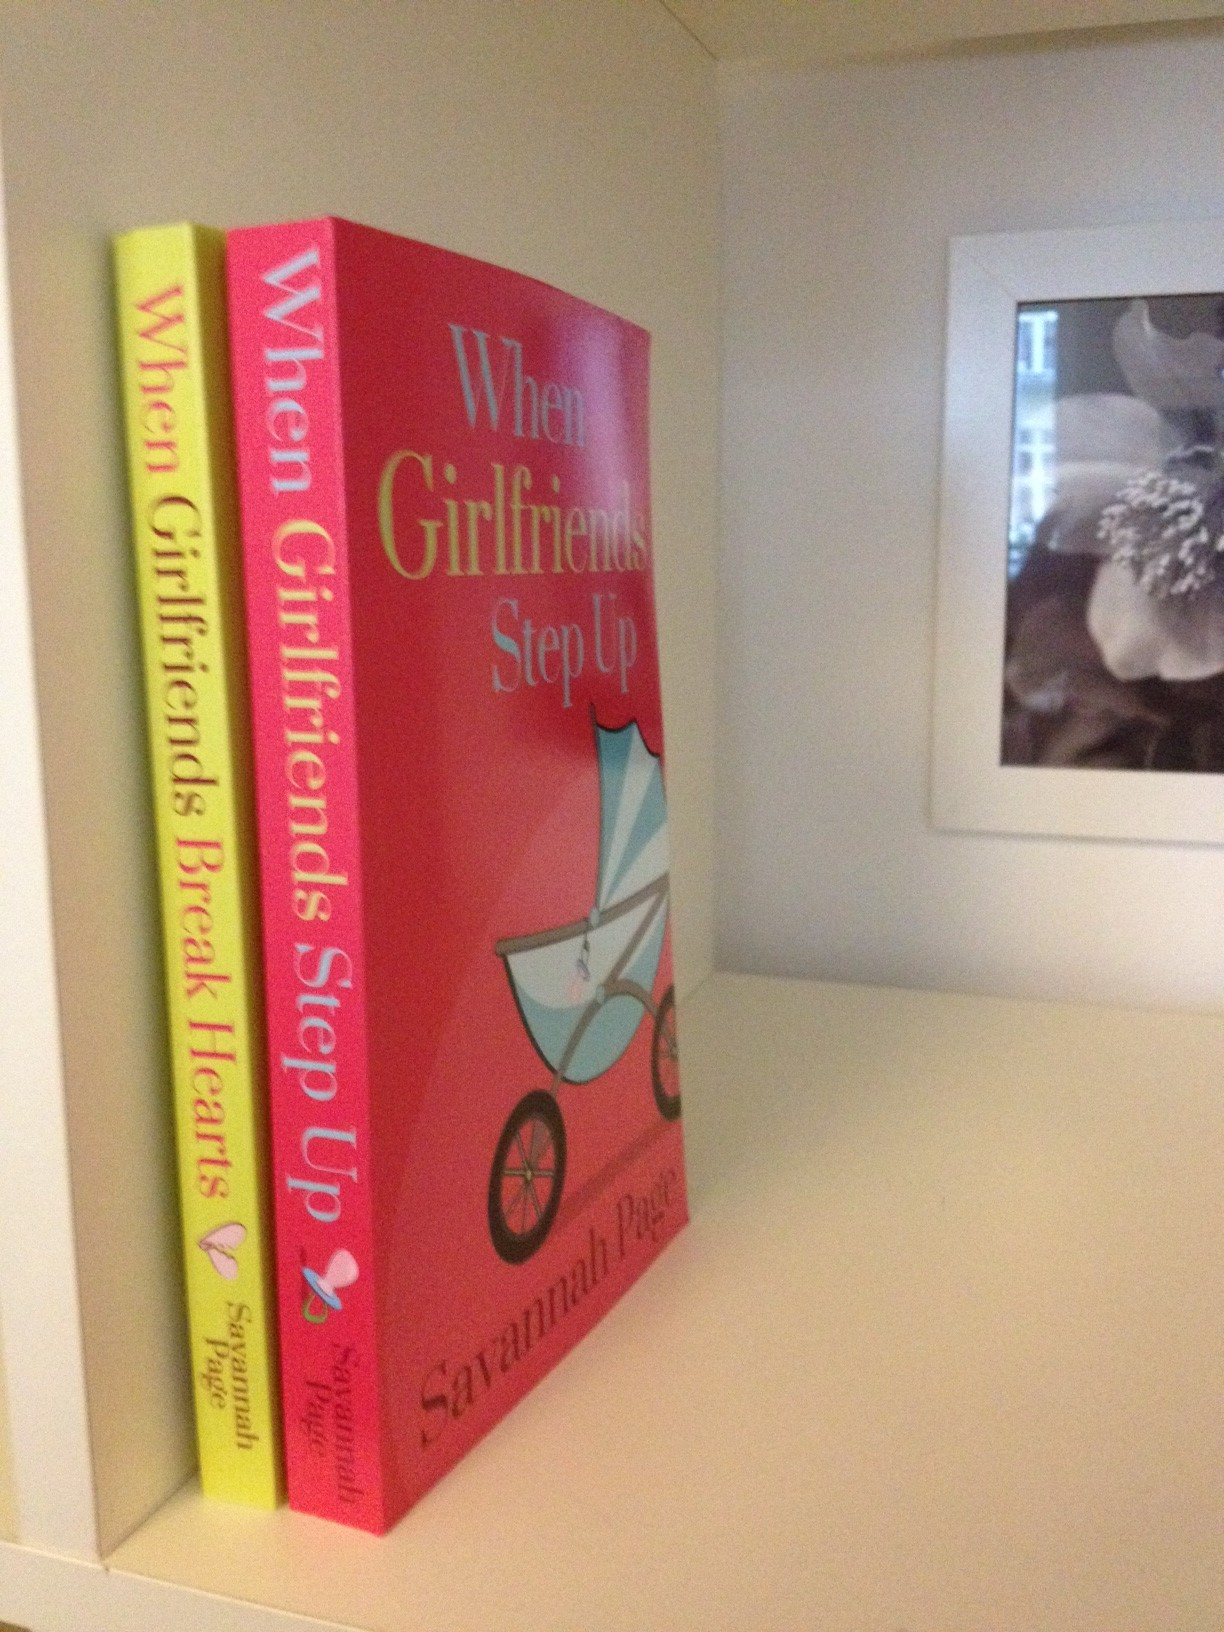 When Girlfriends Books 1 and 2 in Paperback - Savannah Page